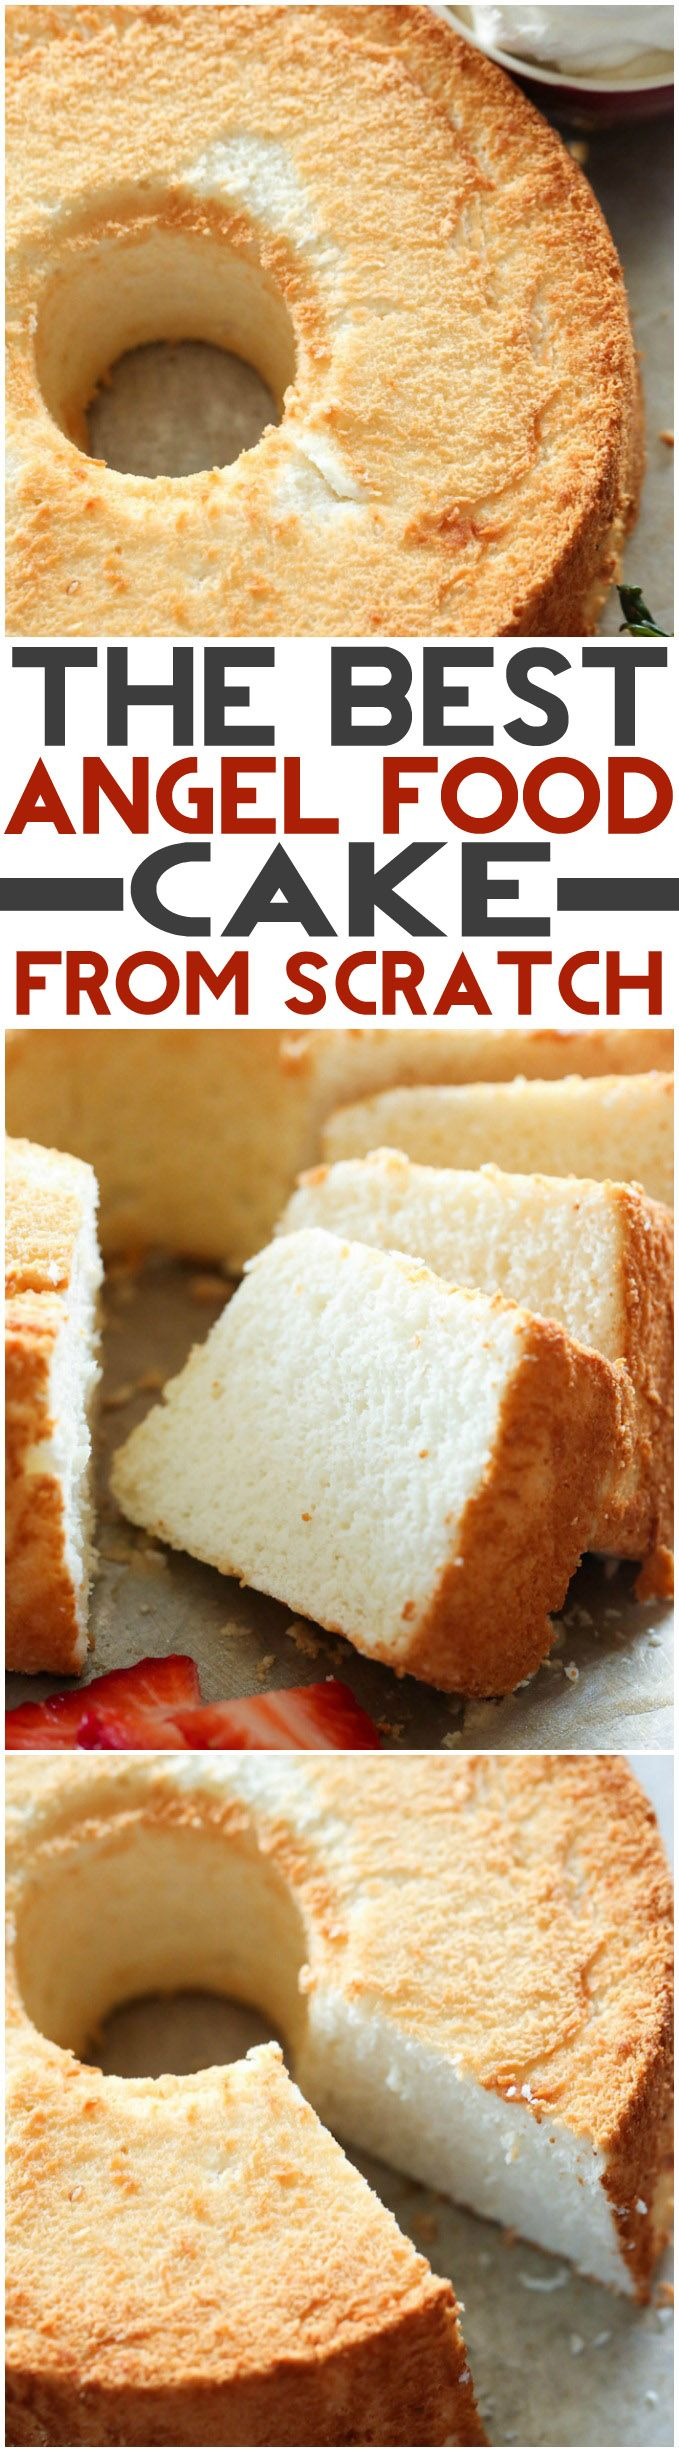 THE BEST Angel Food Cake from scratch! This cake has the most perfect texture…